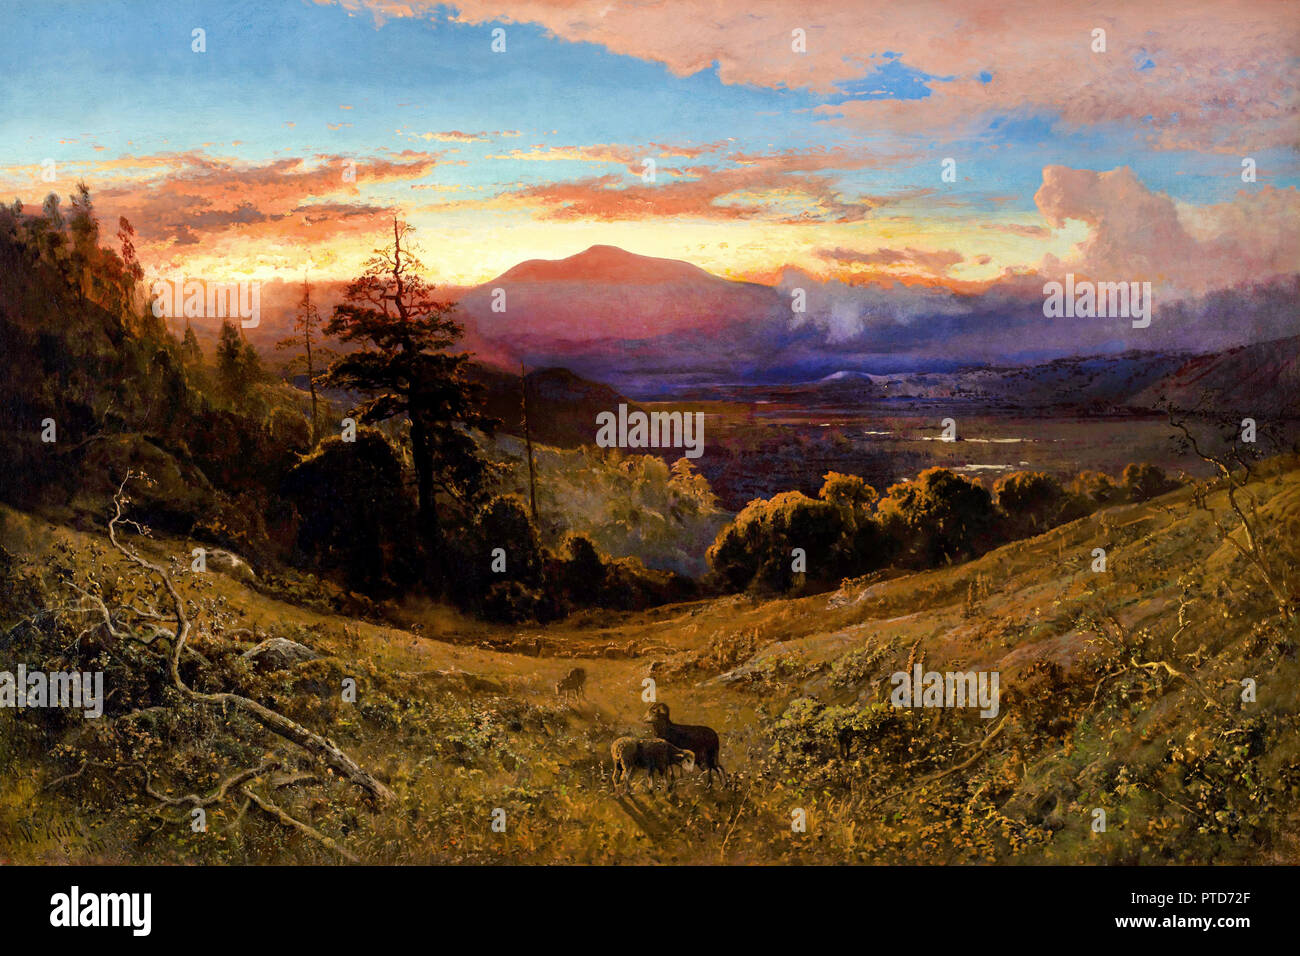 William Keith, Sunset on Mount Diablo / Marin Sunset 1877 Oil on canvas, Stanford University, USA. - Stock Image